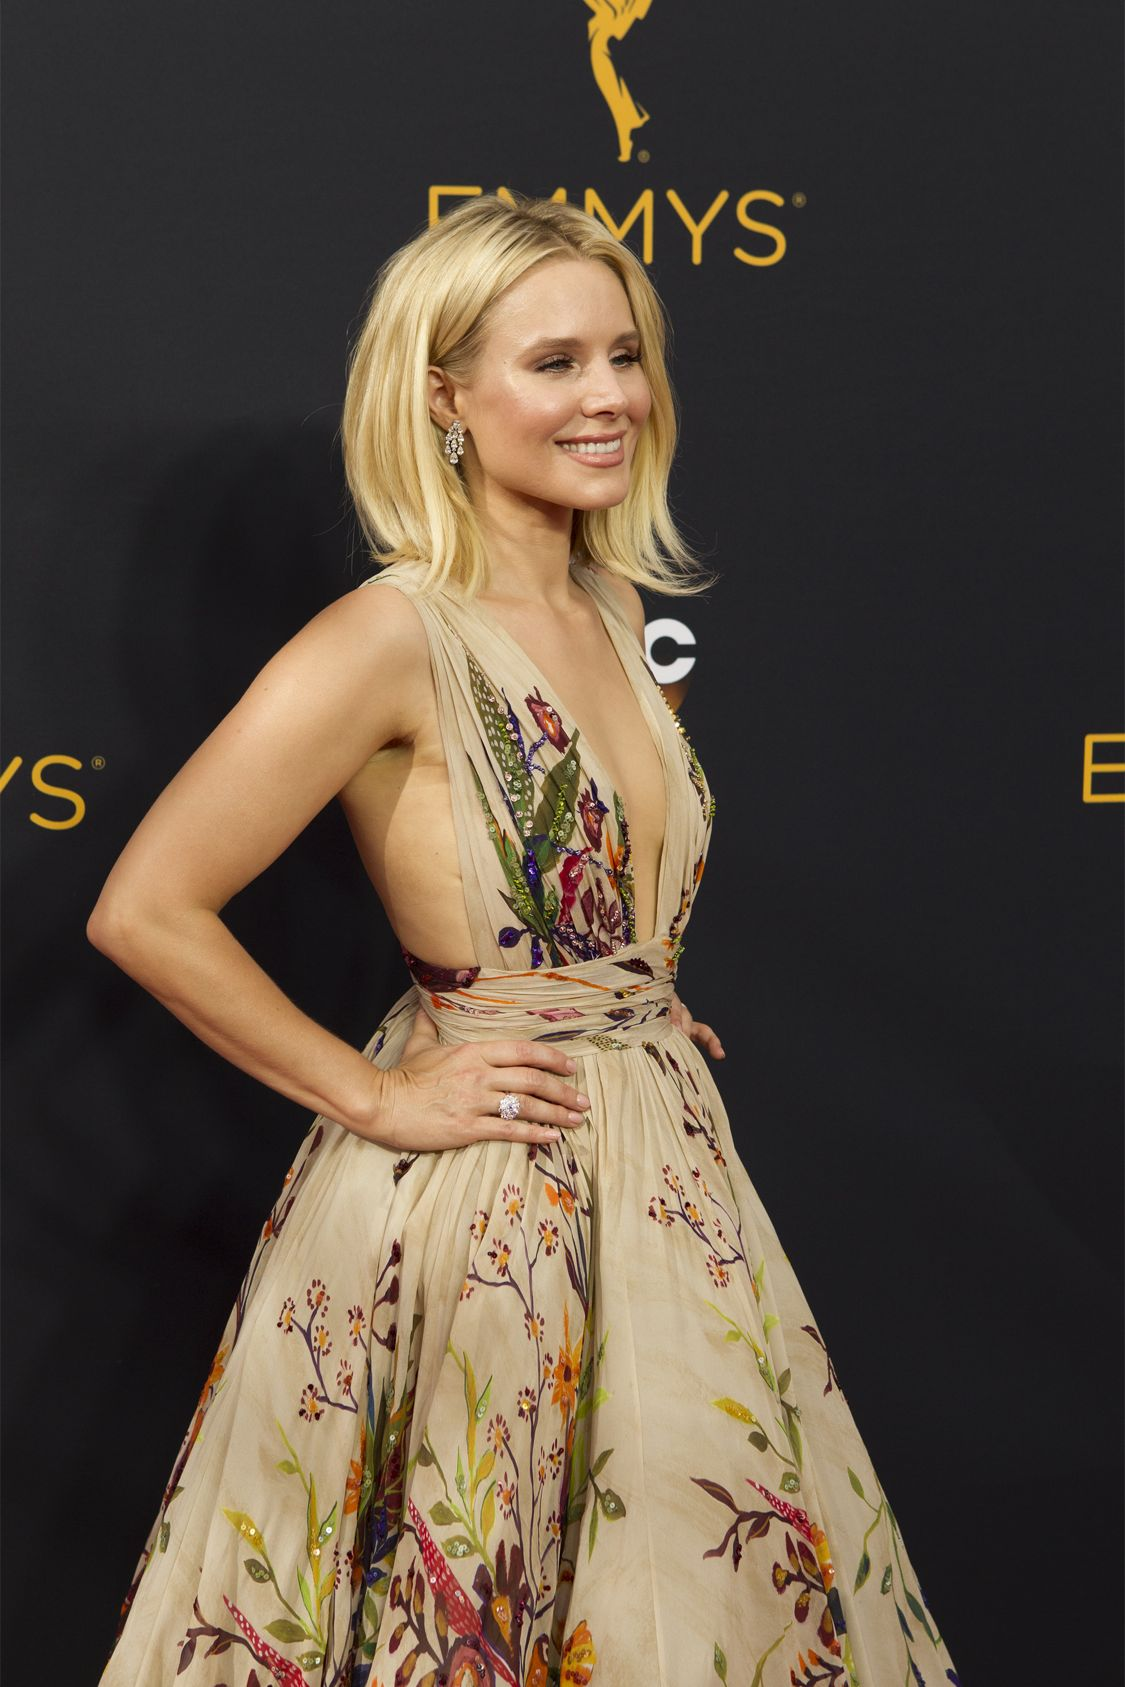 """THE 68TH EMMY(r) AWARDS - """"The 68th Emmy Awards"""" broadcasts live from The Microsoft Theater in Los Angeles, Sunday, September 18 (7:00-11:00 p.m. EDT/4:00-8:00 p.m. PDT), on ABC and is hosted by Jimmy Kimmel. (ABC/Rick Rowell) KRISTEN BELL"""